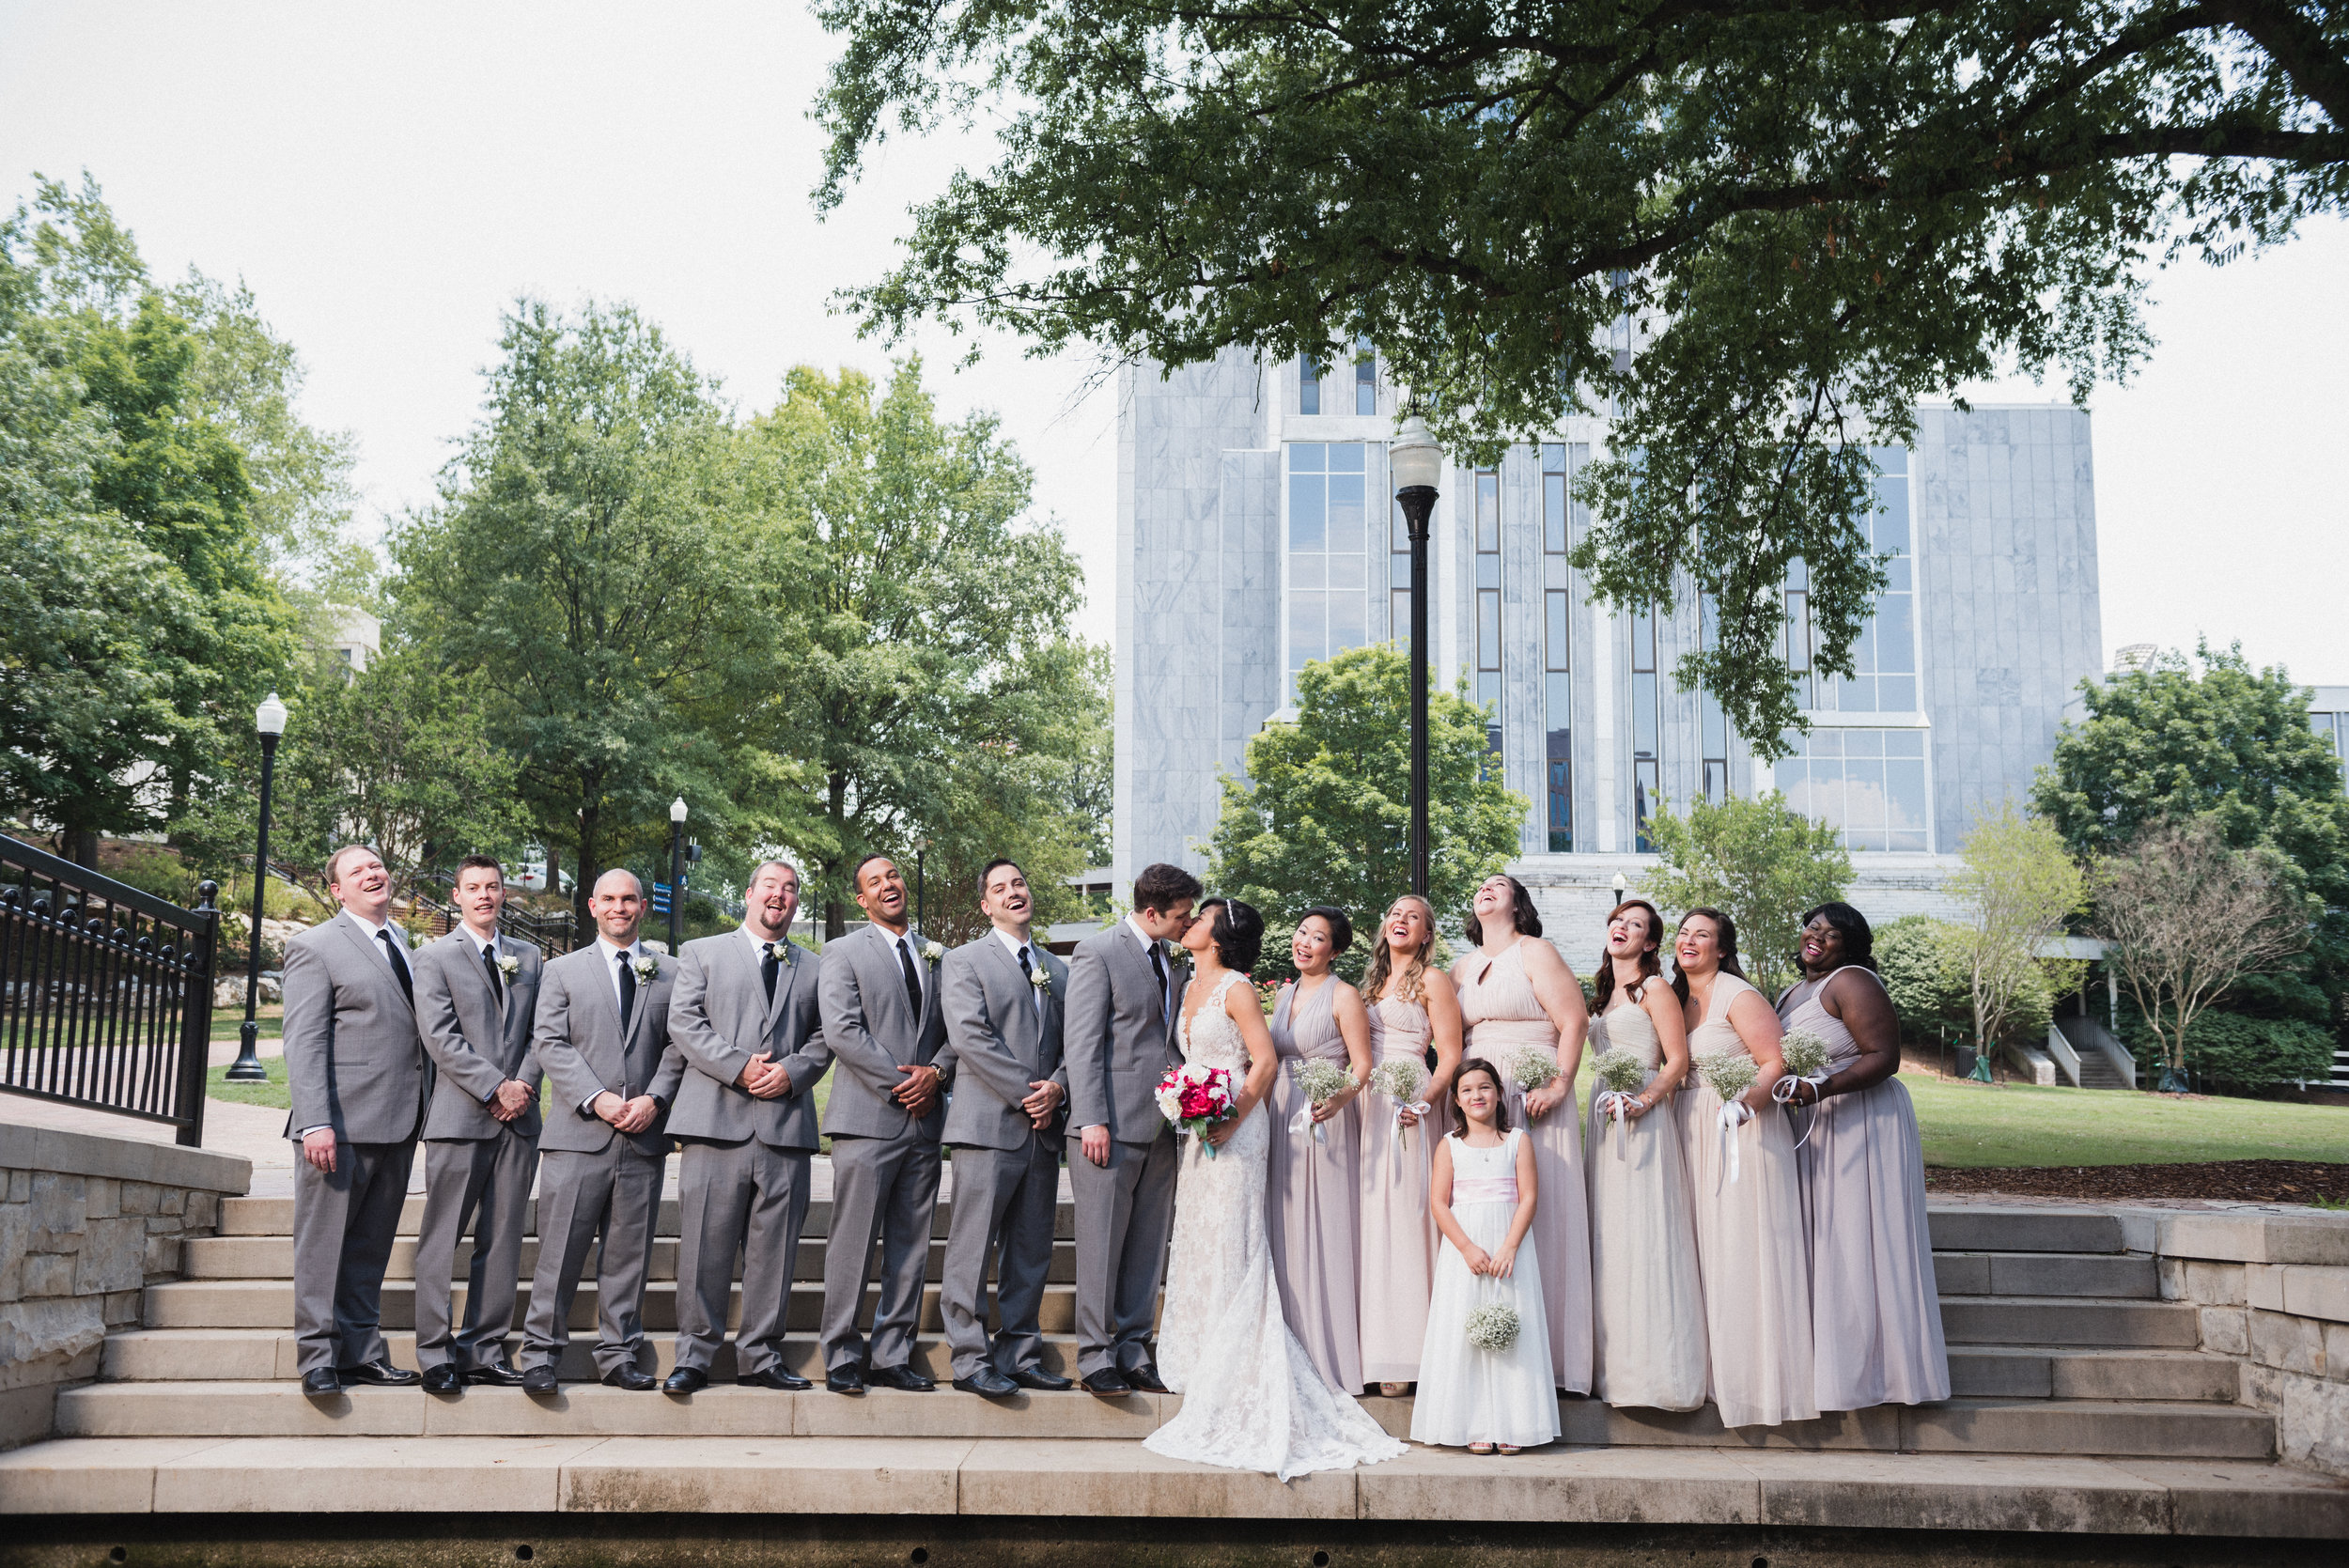 NashvilleWeddingCollection-484.jpg